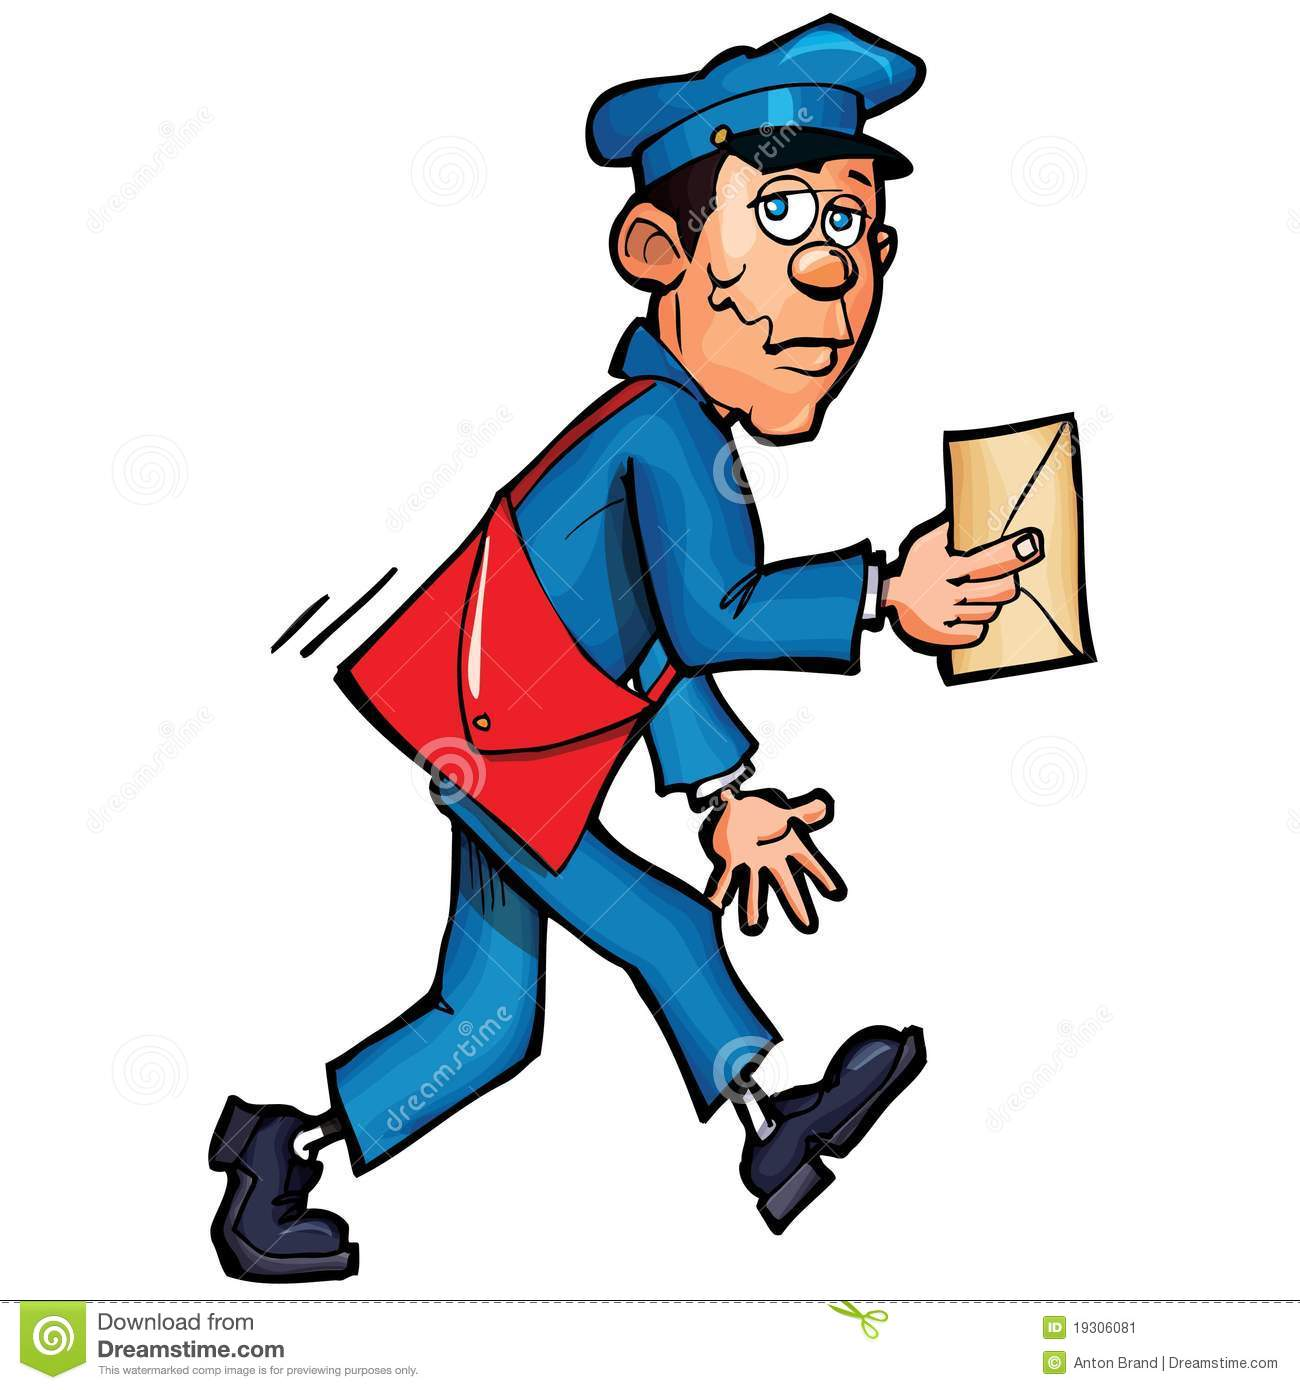 Cartoon Mailman Delivering Mail Stock Image - Image: 19306081